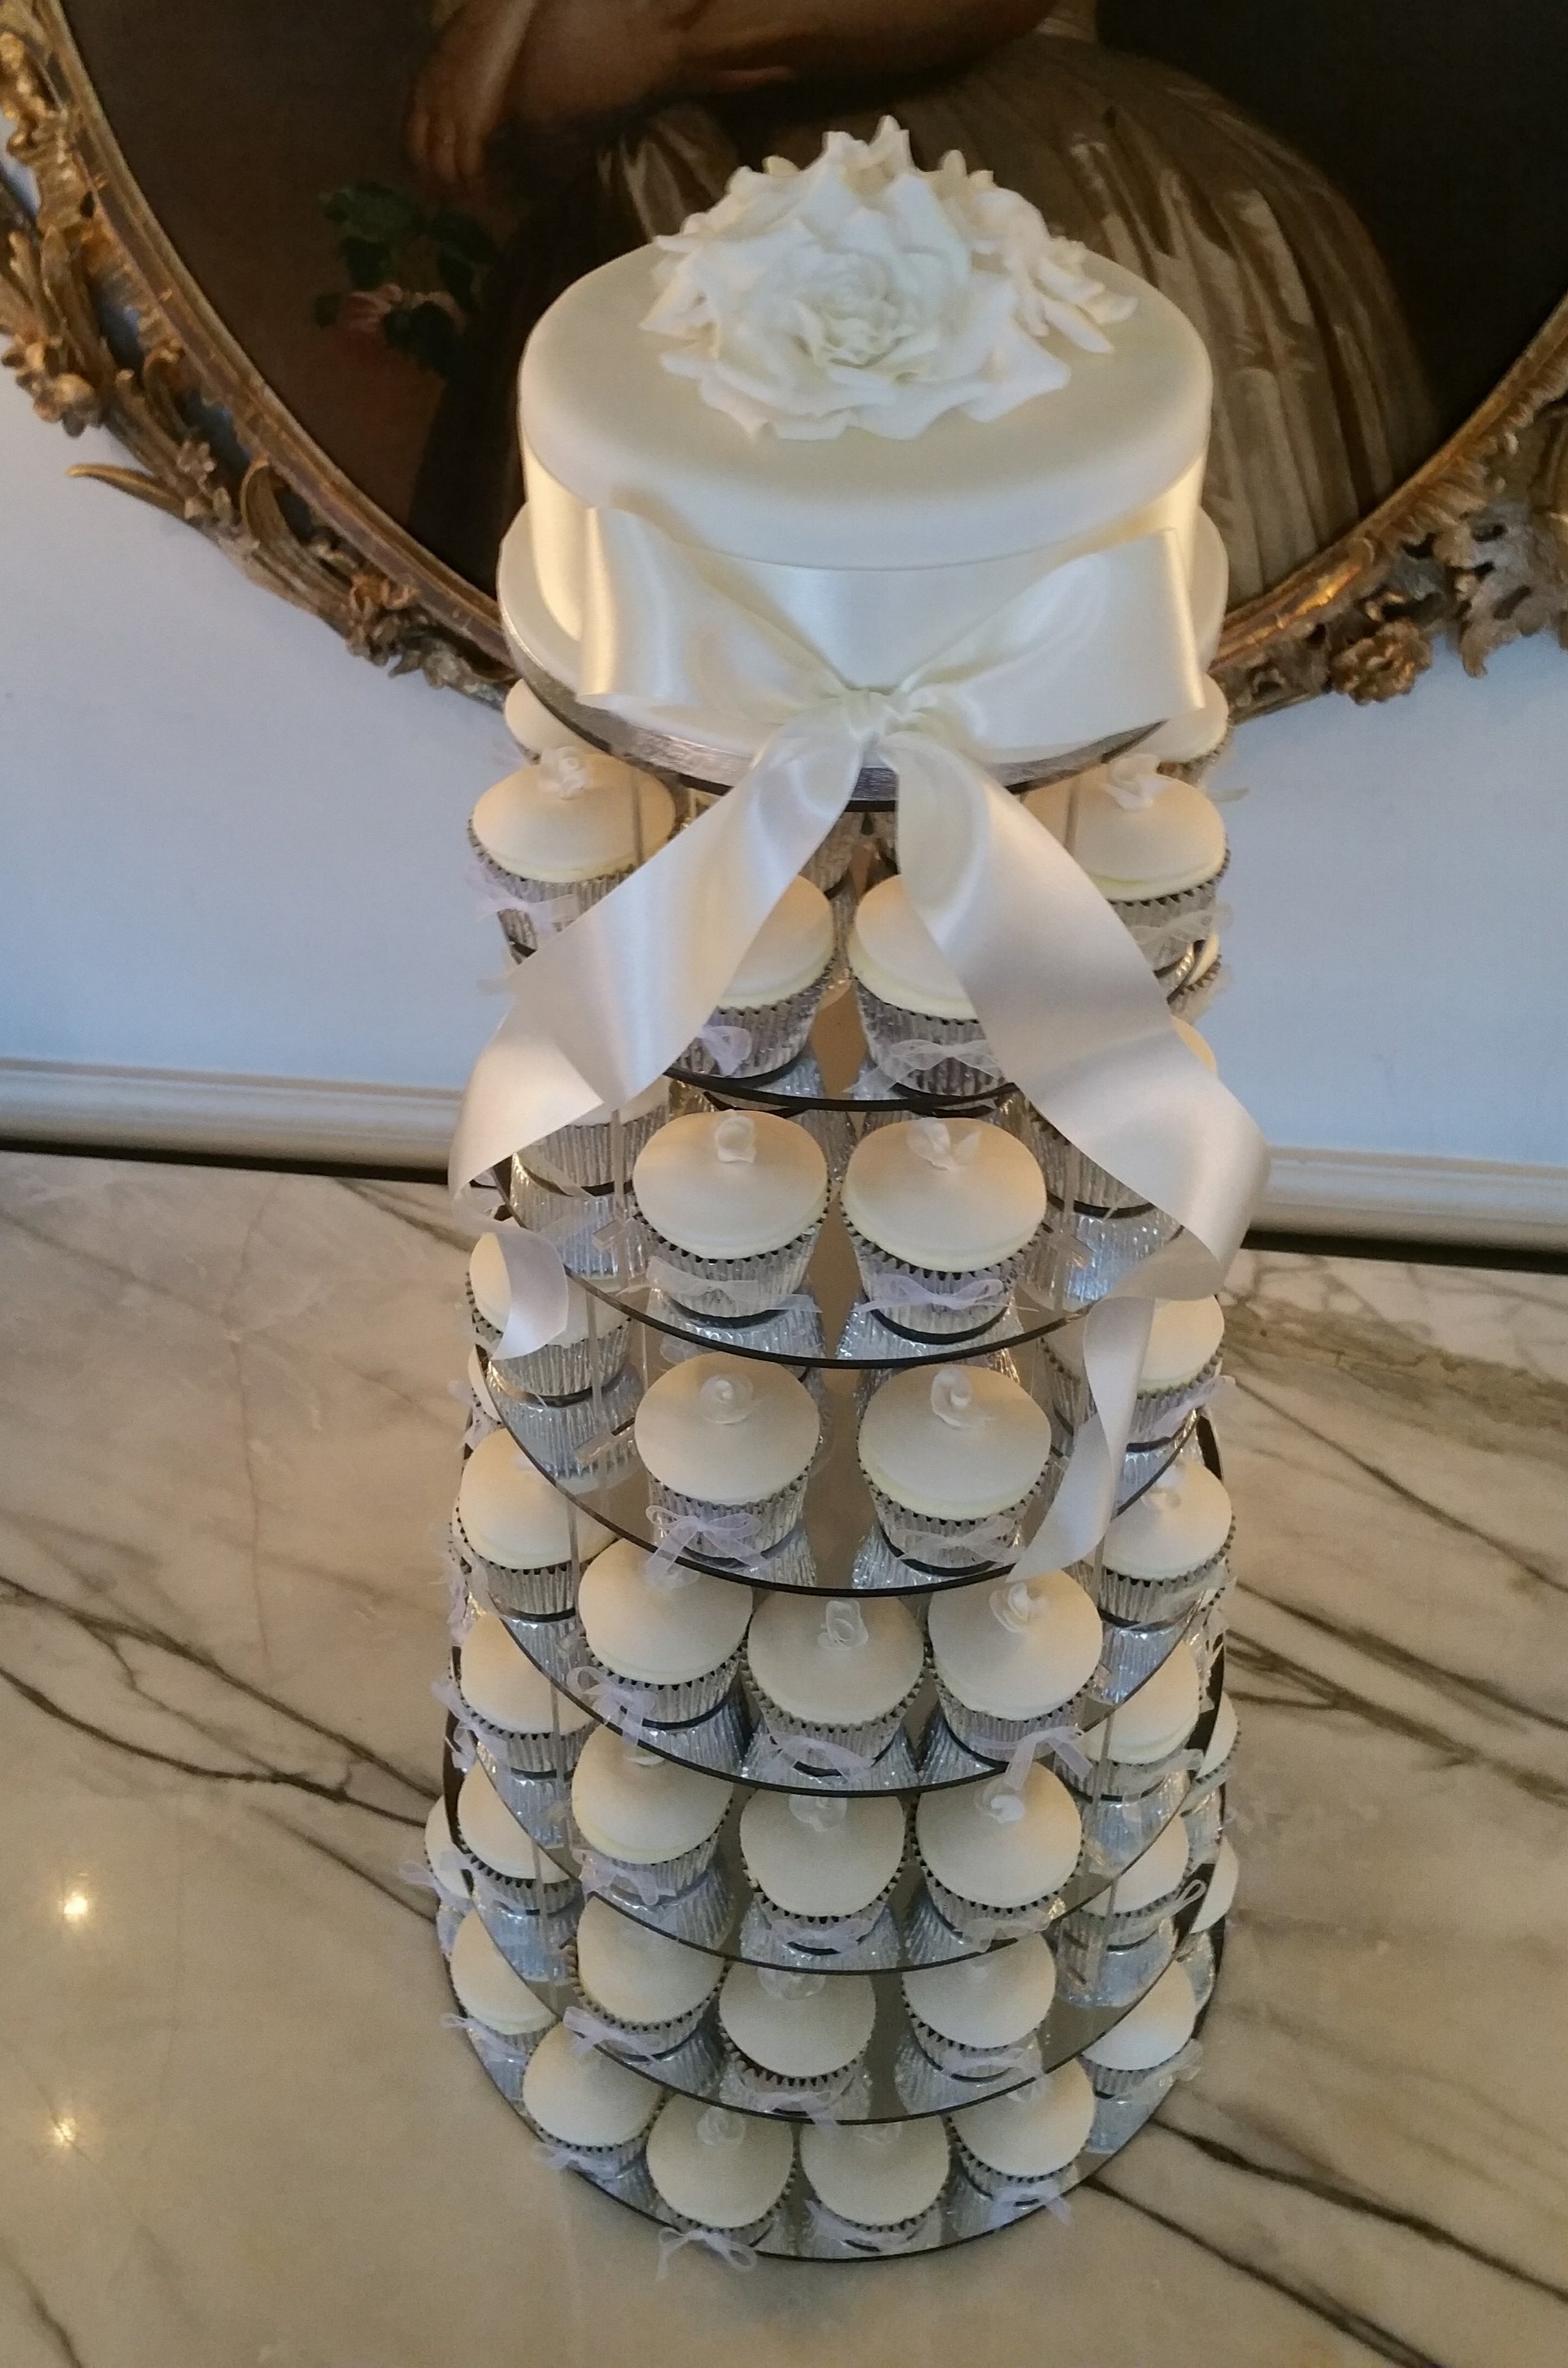 Elegant cupcake tower - So pretty, this elegant tower of hand made cupcakes and top cake was displayed at Cliveden.  Each cake featured a hand made rose and bow.  The top cake had a gorgeous arrangement of white sugar roses.